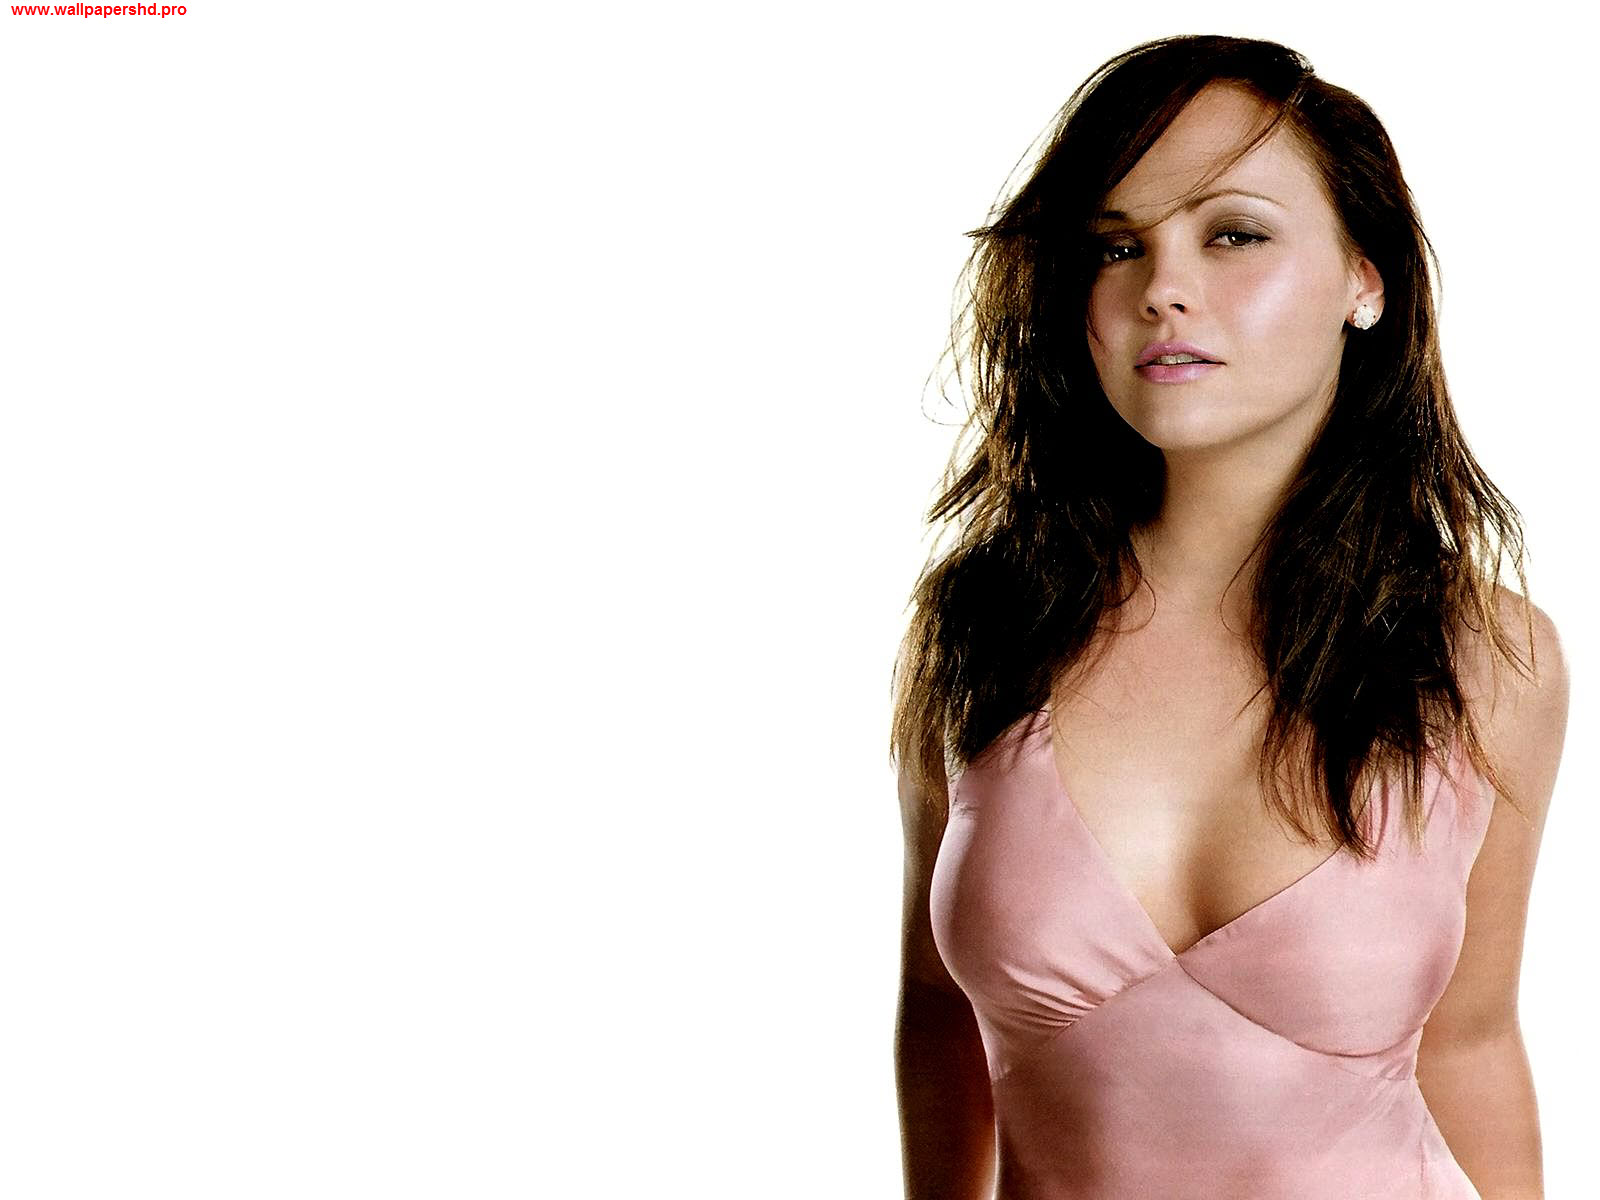 Christina Ricci wallpapers hd 2012, New 7 hot pictures of Christina